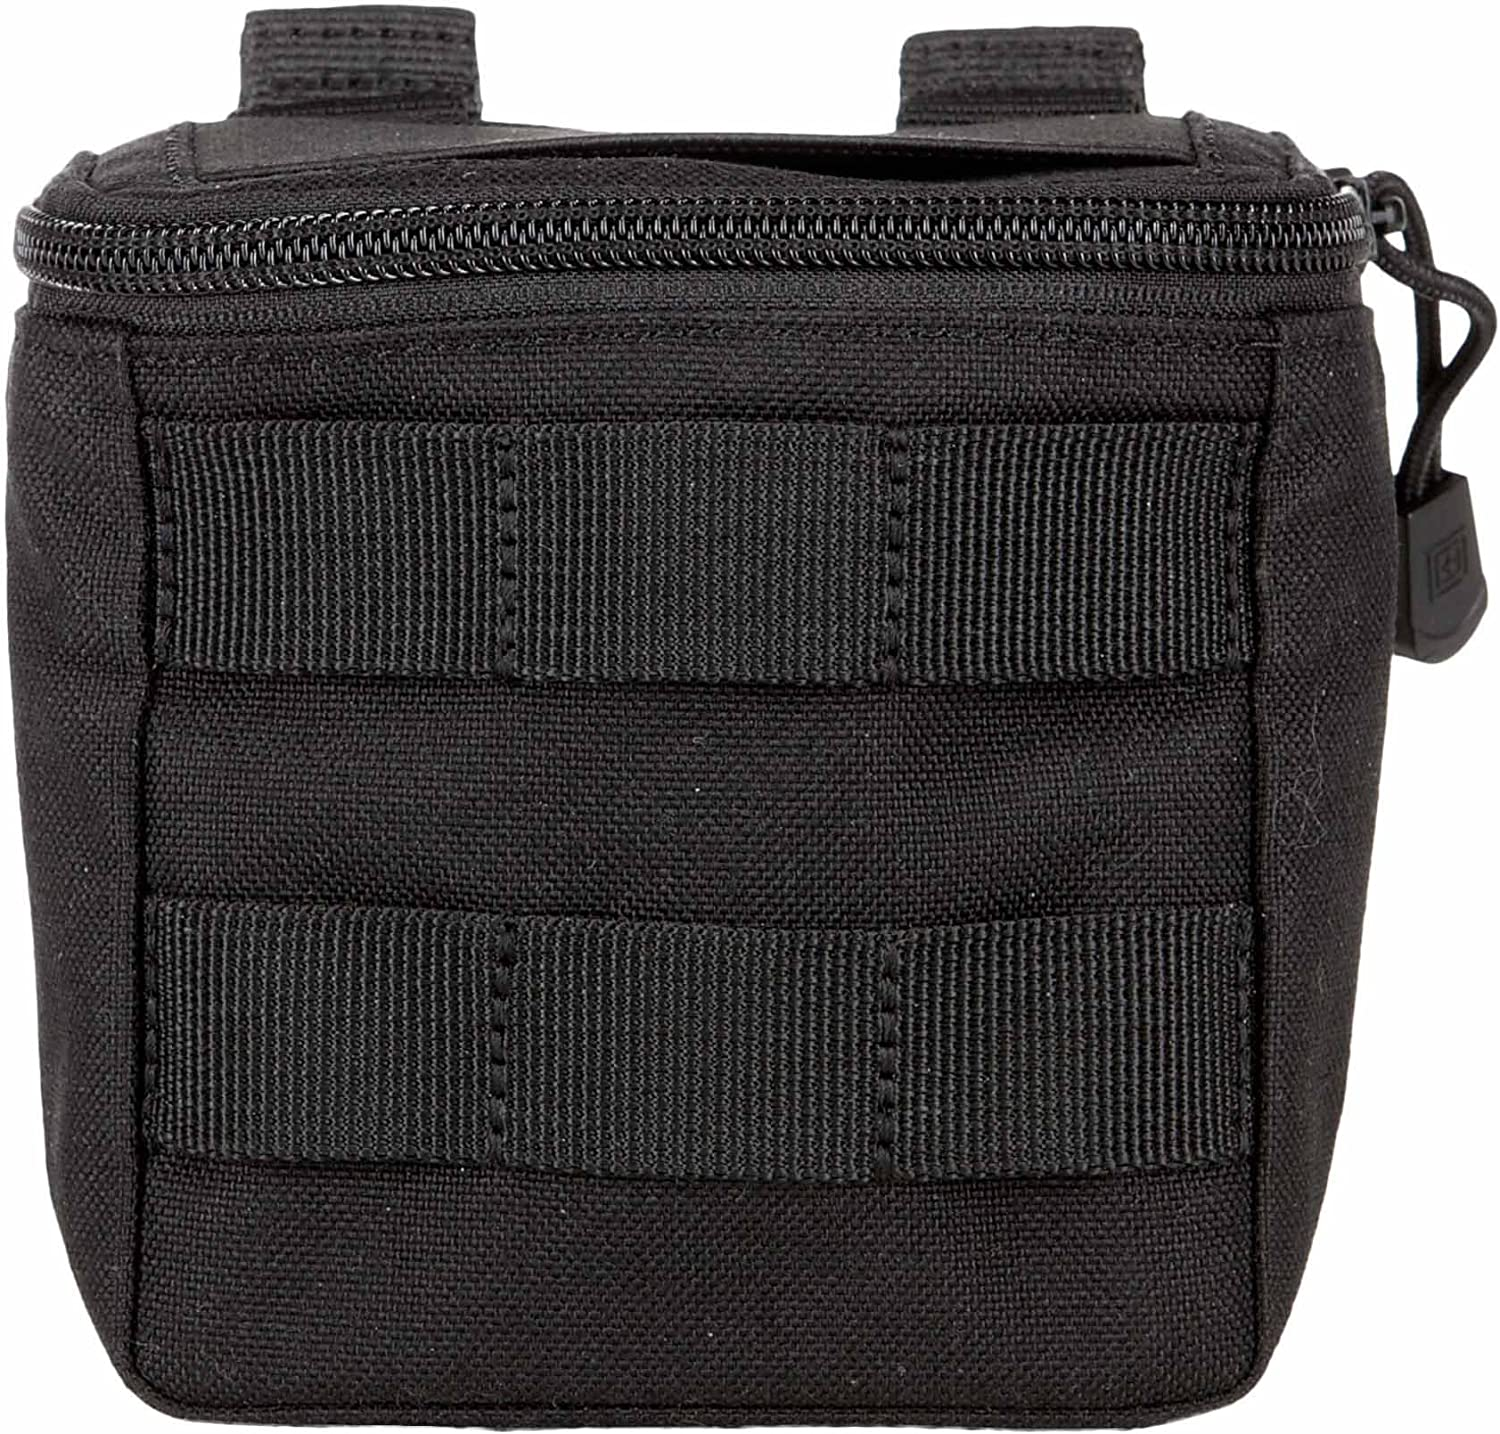 Tac Olive Drab 5.11 Tactical Series 56119 Shotgun Ammo Pouch